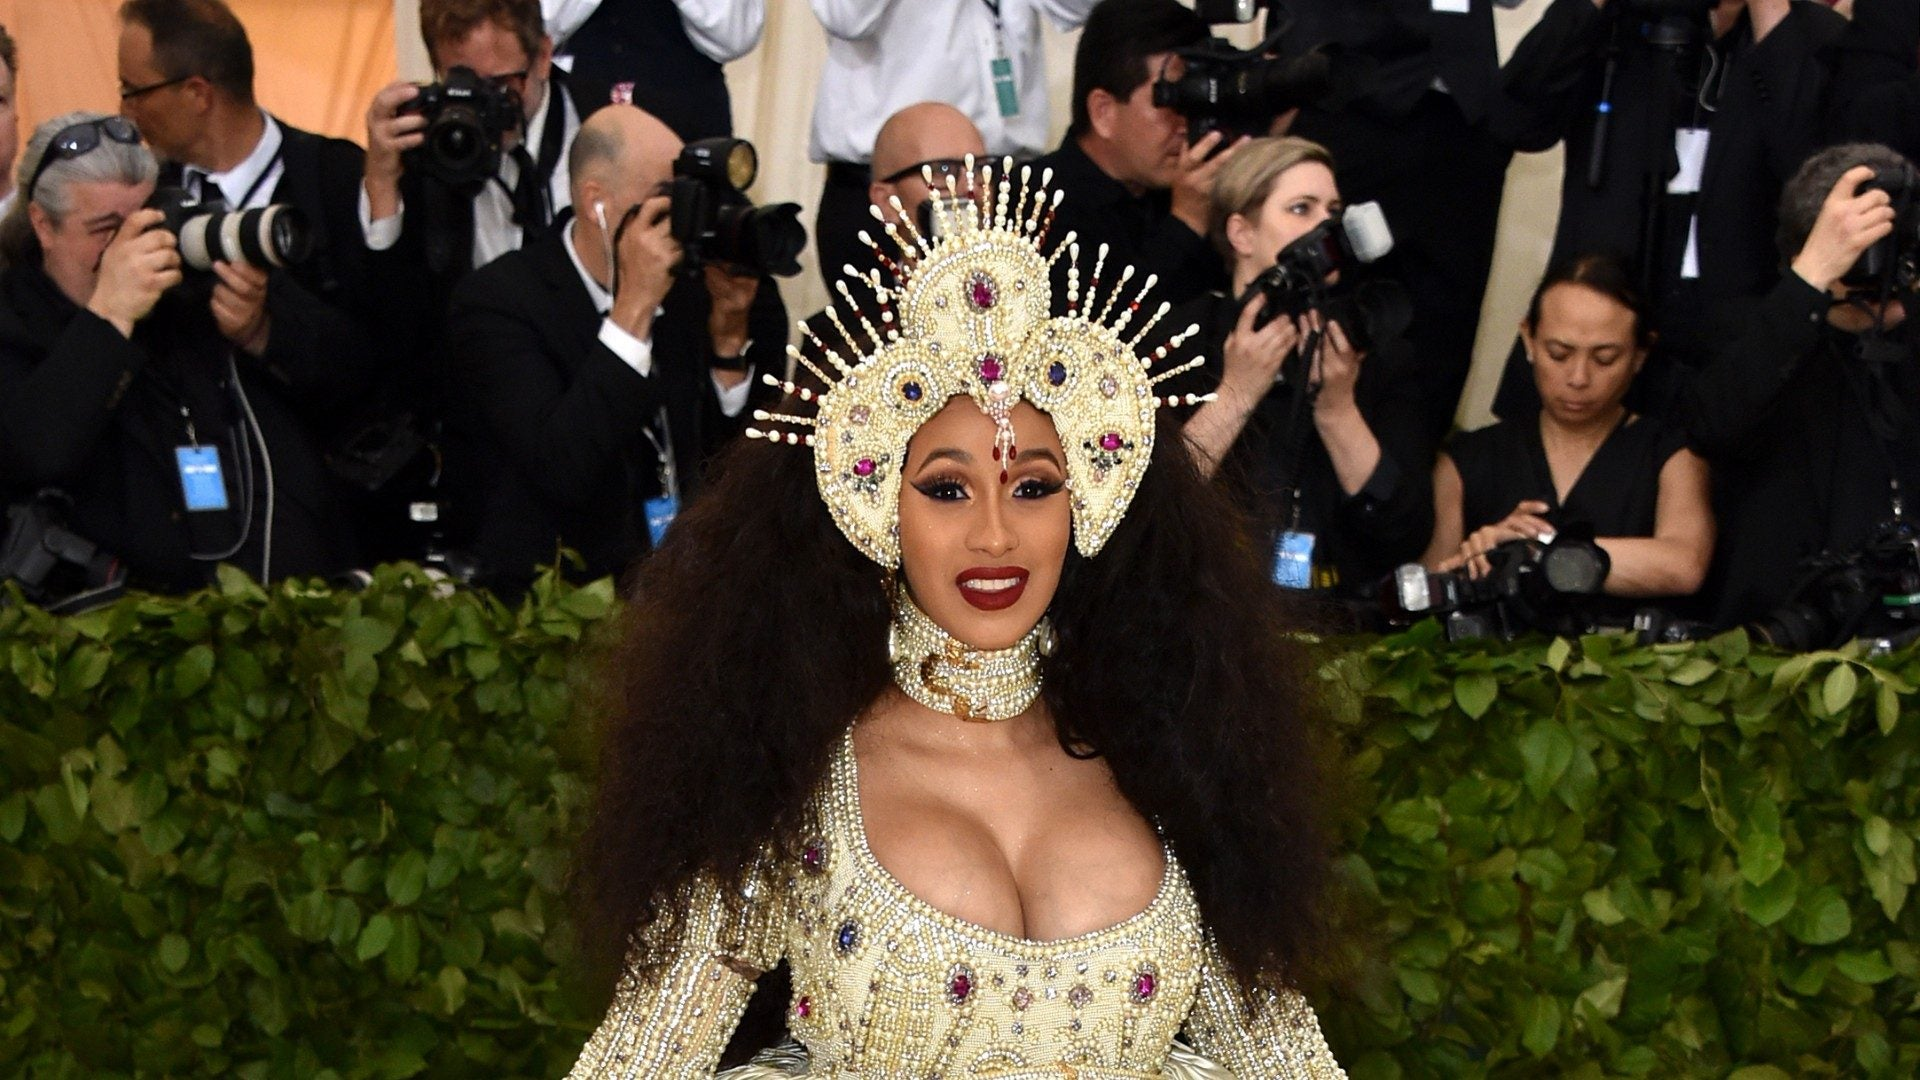 Check Out These Past Met Gala Beauty Moments